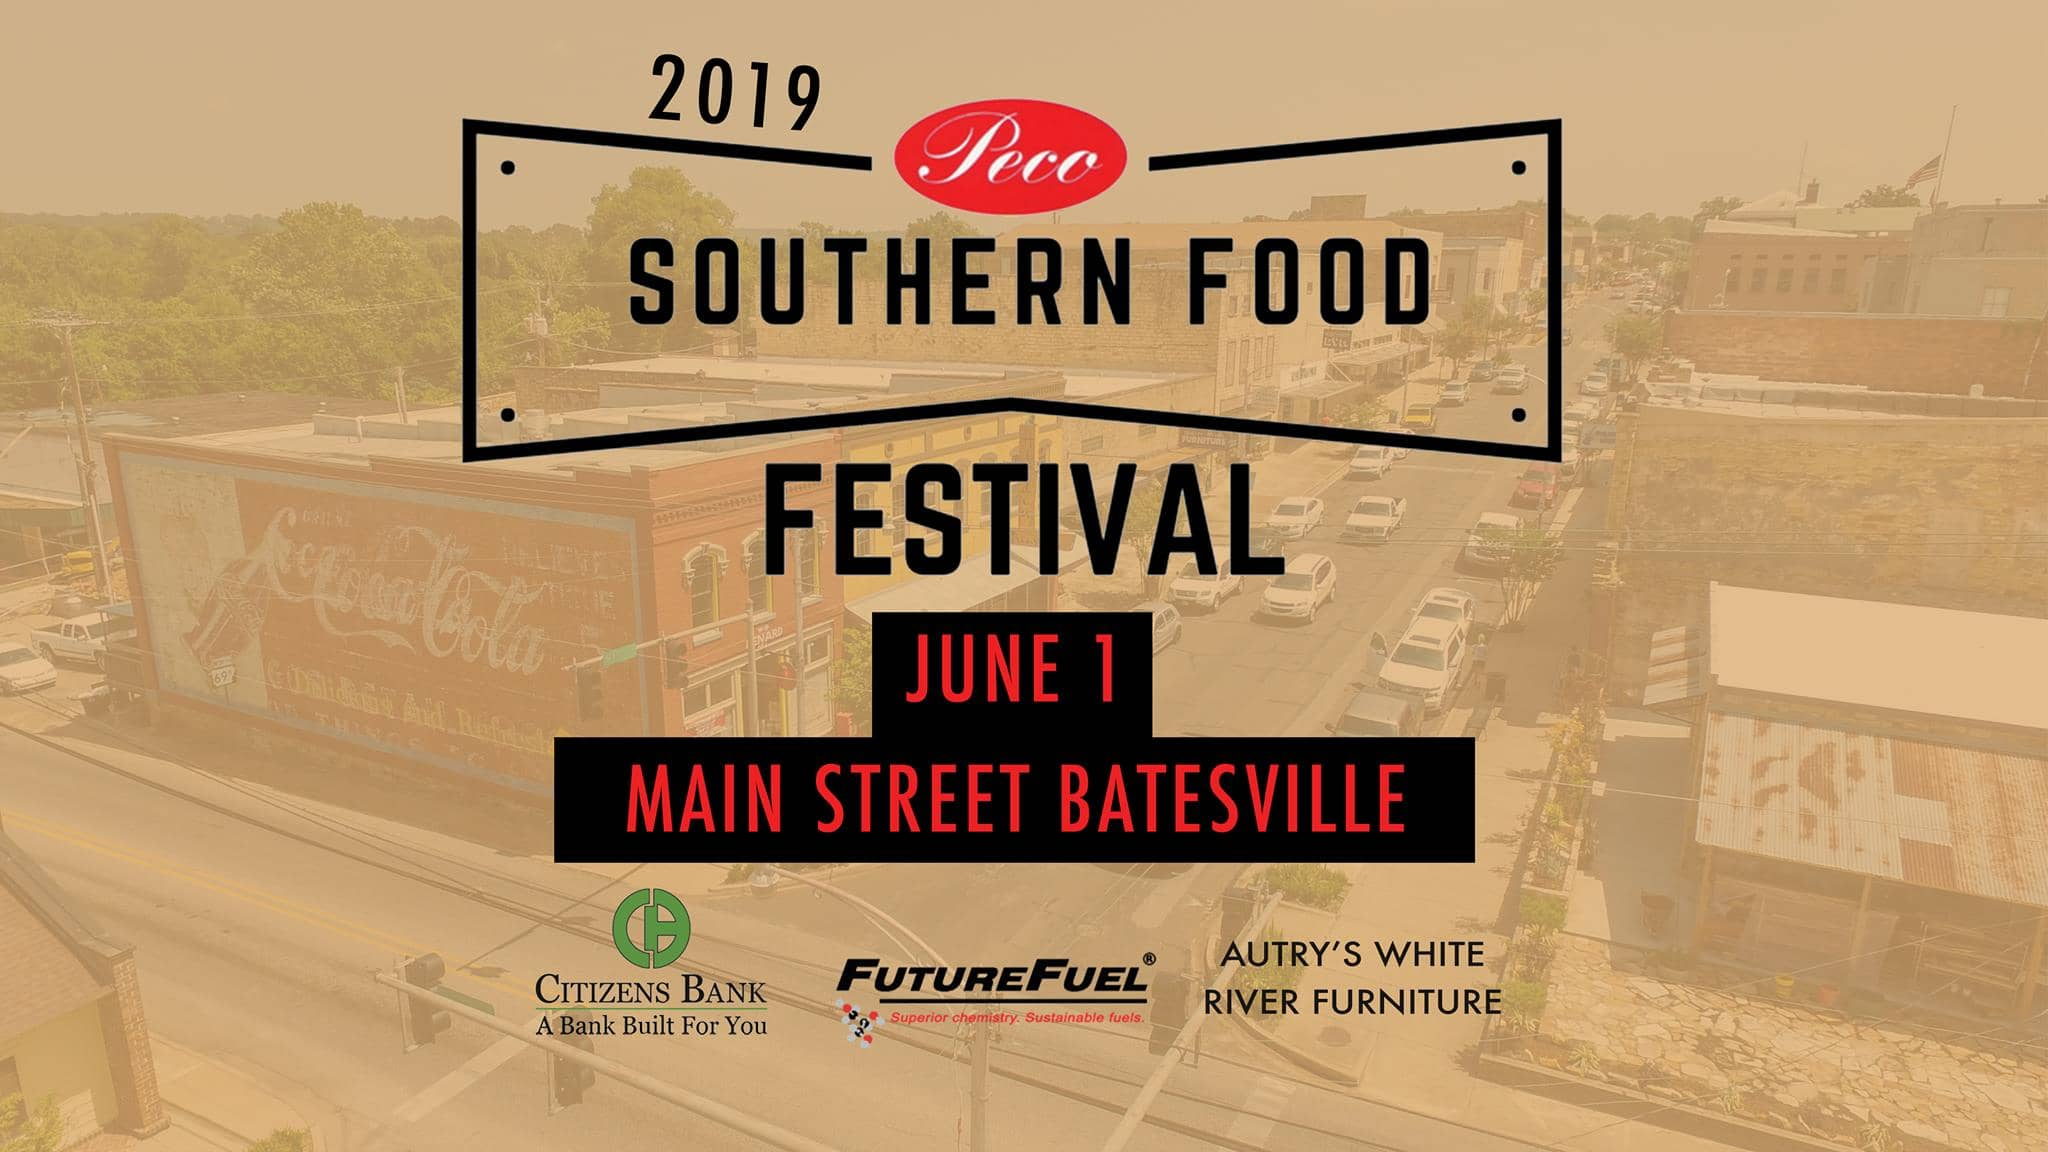 Southern Food Festival 2019